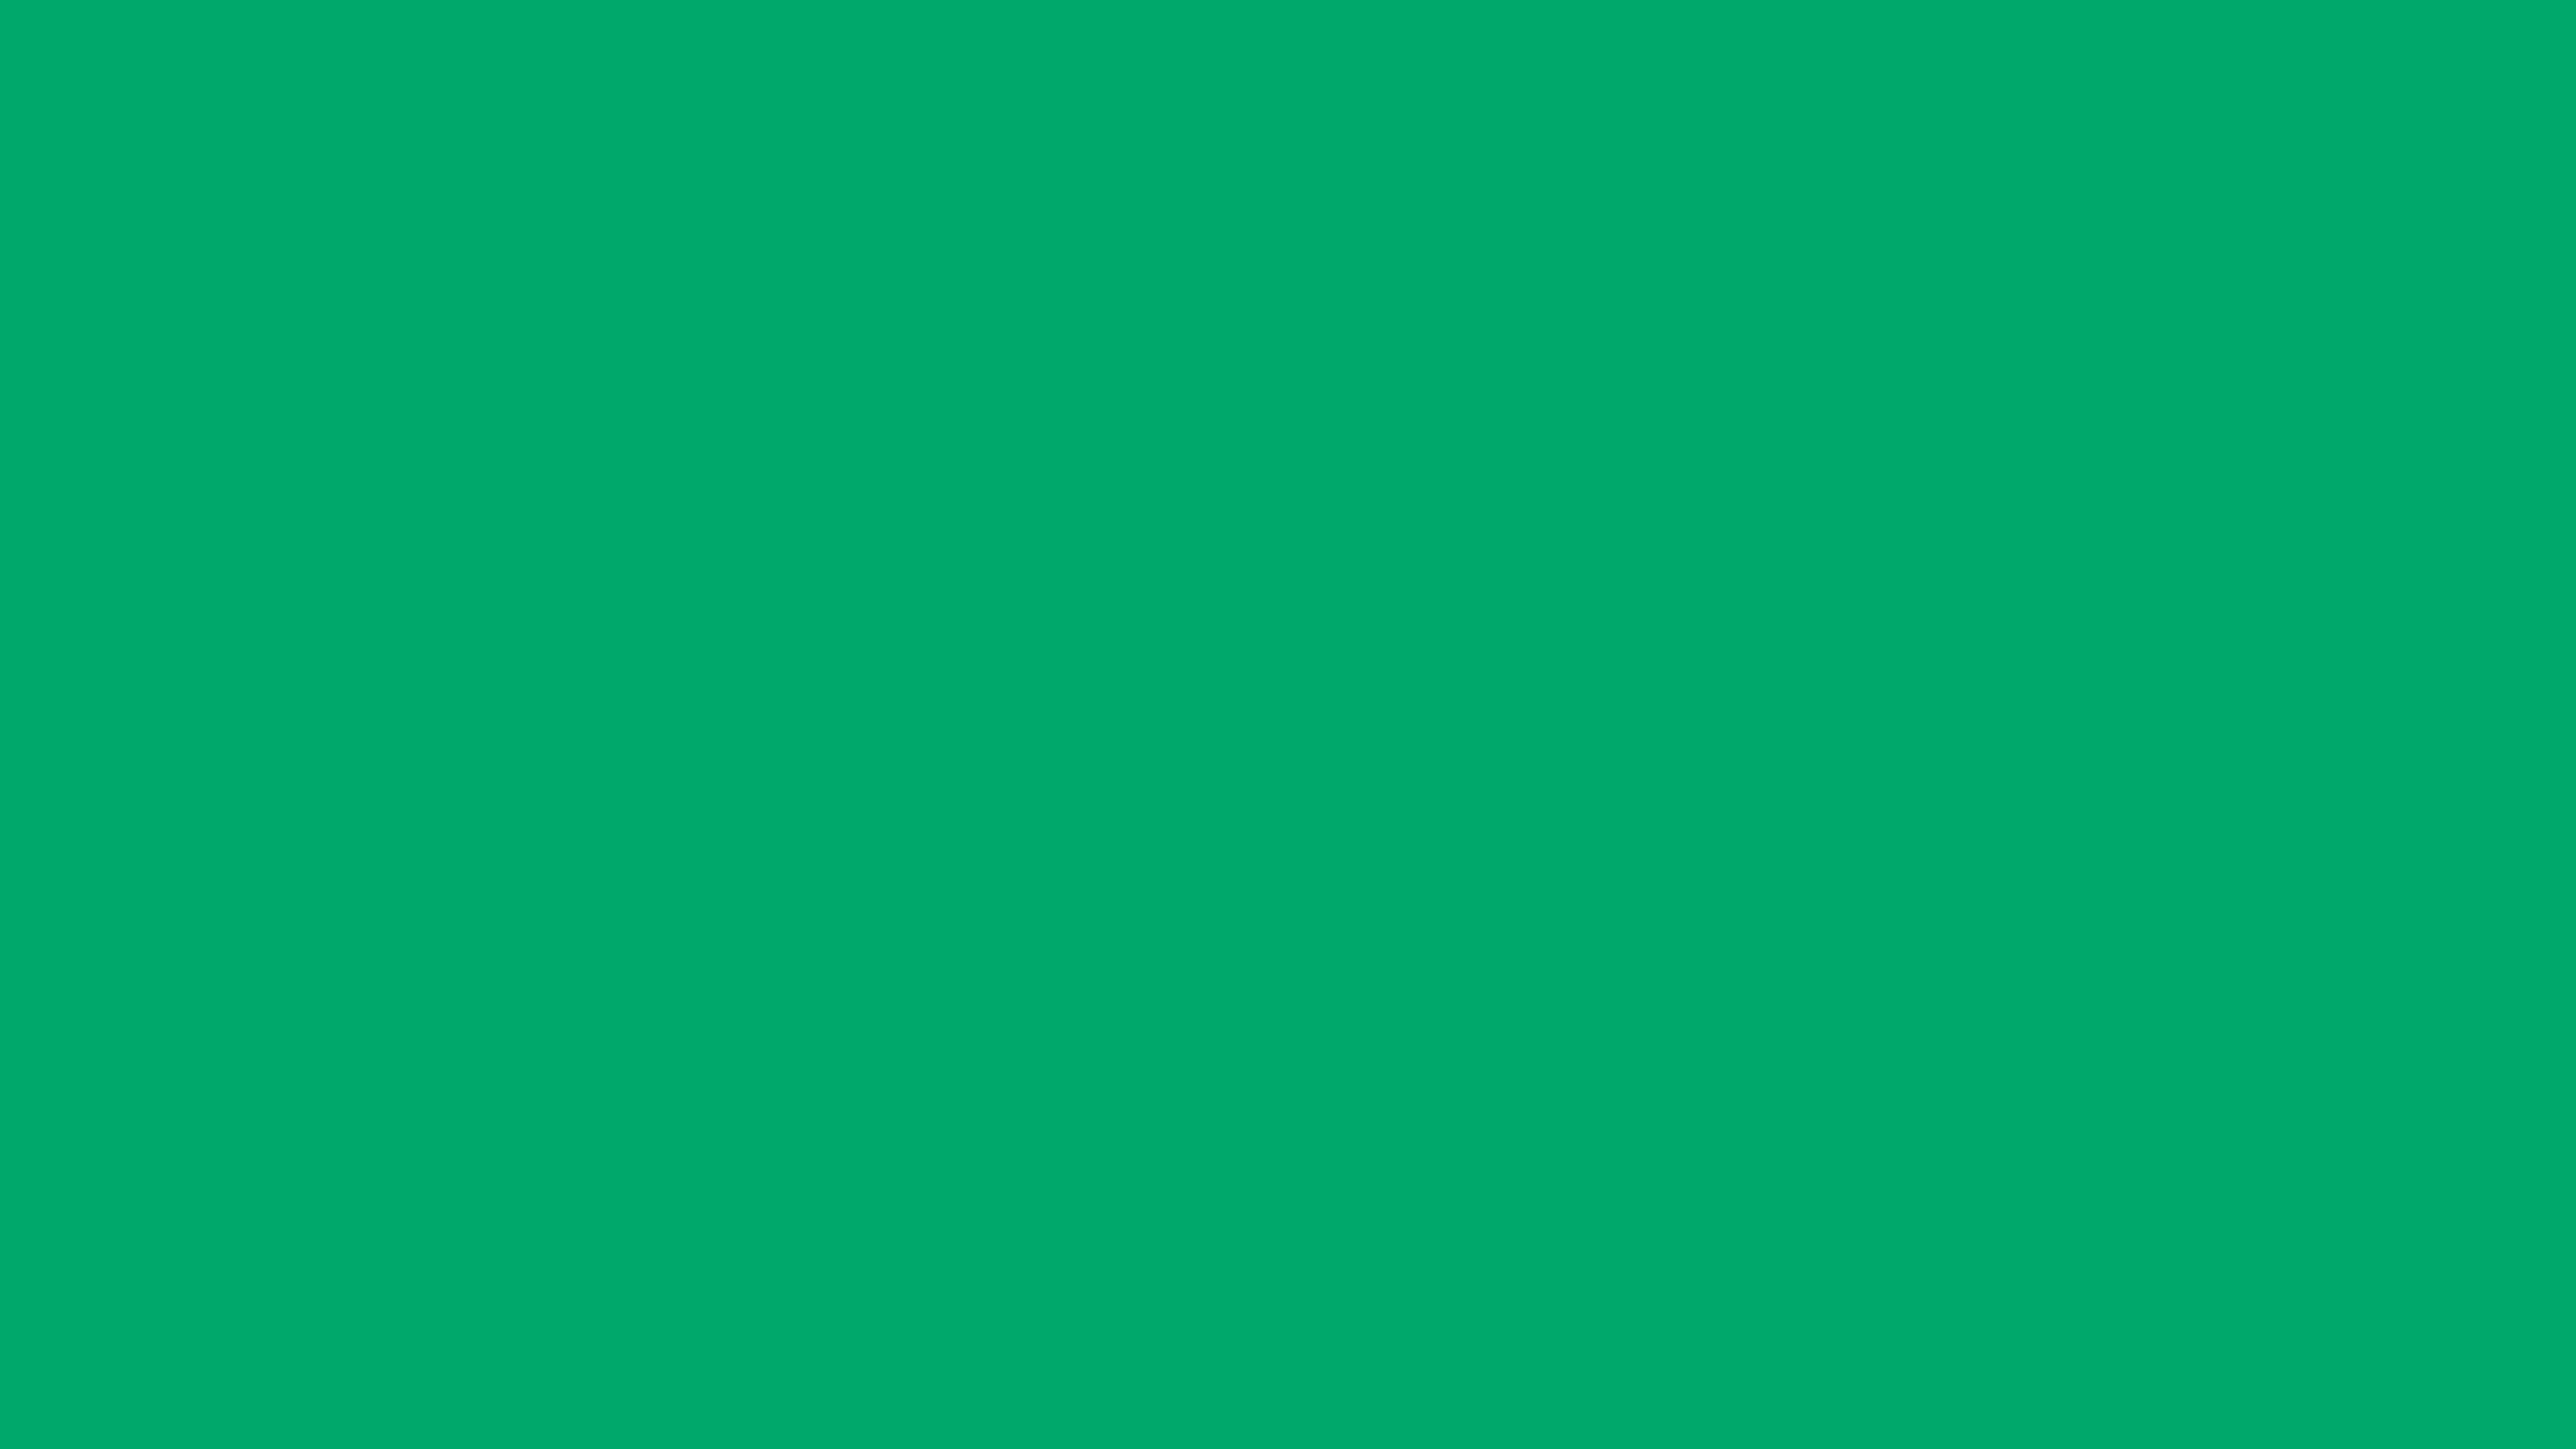 3840x2160 Jade Solid Color Background